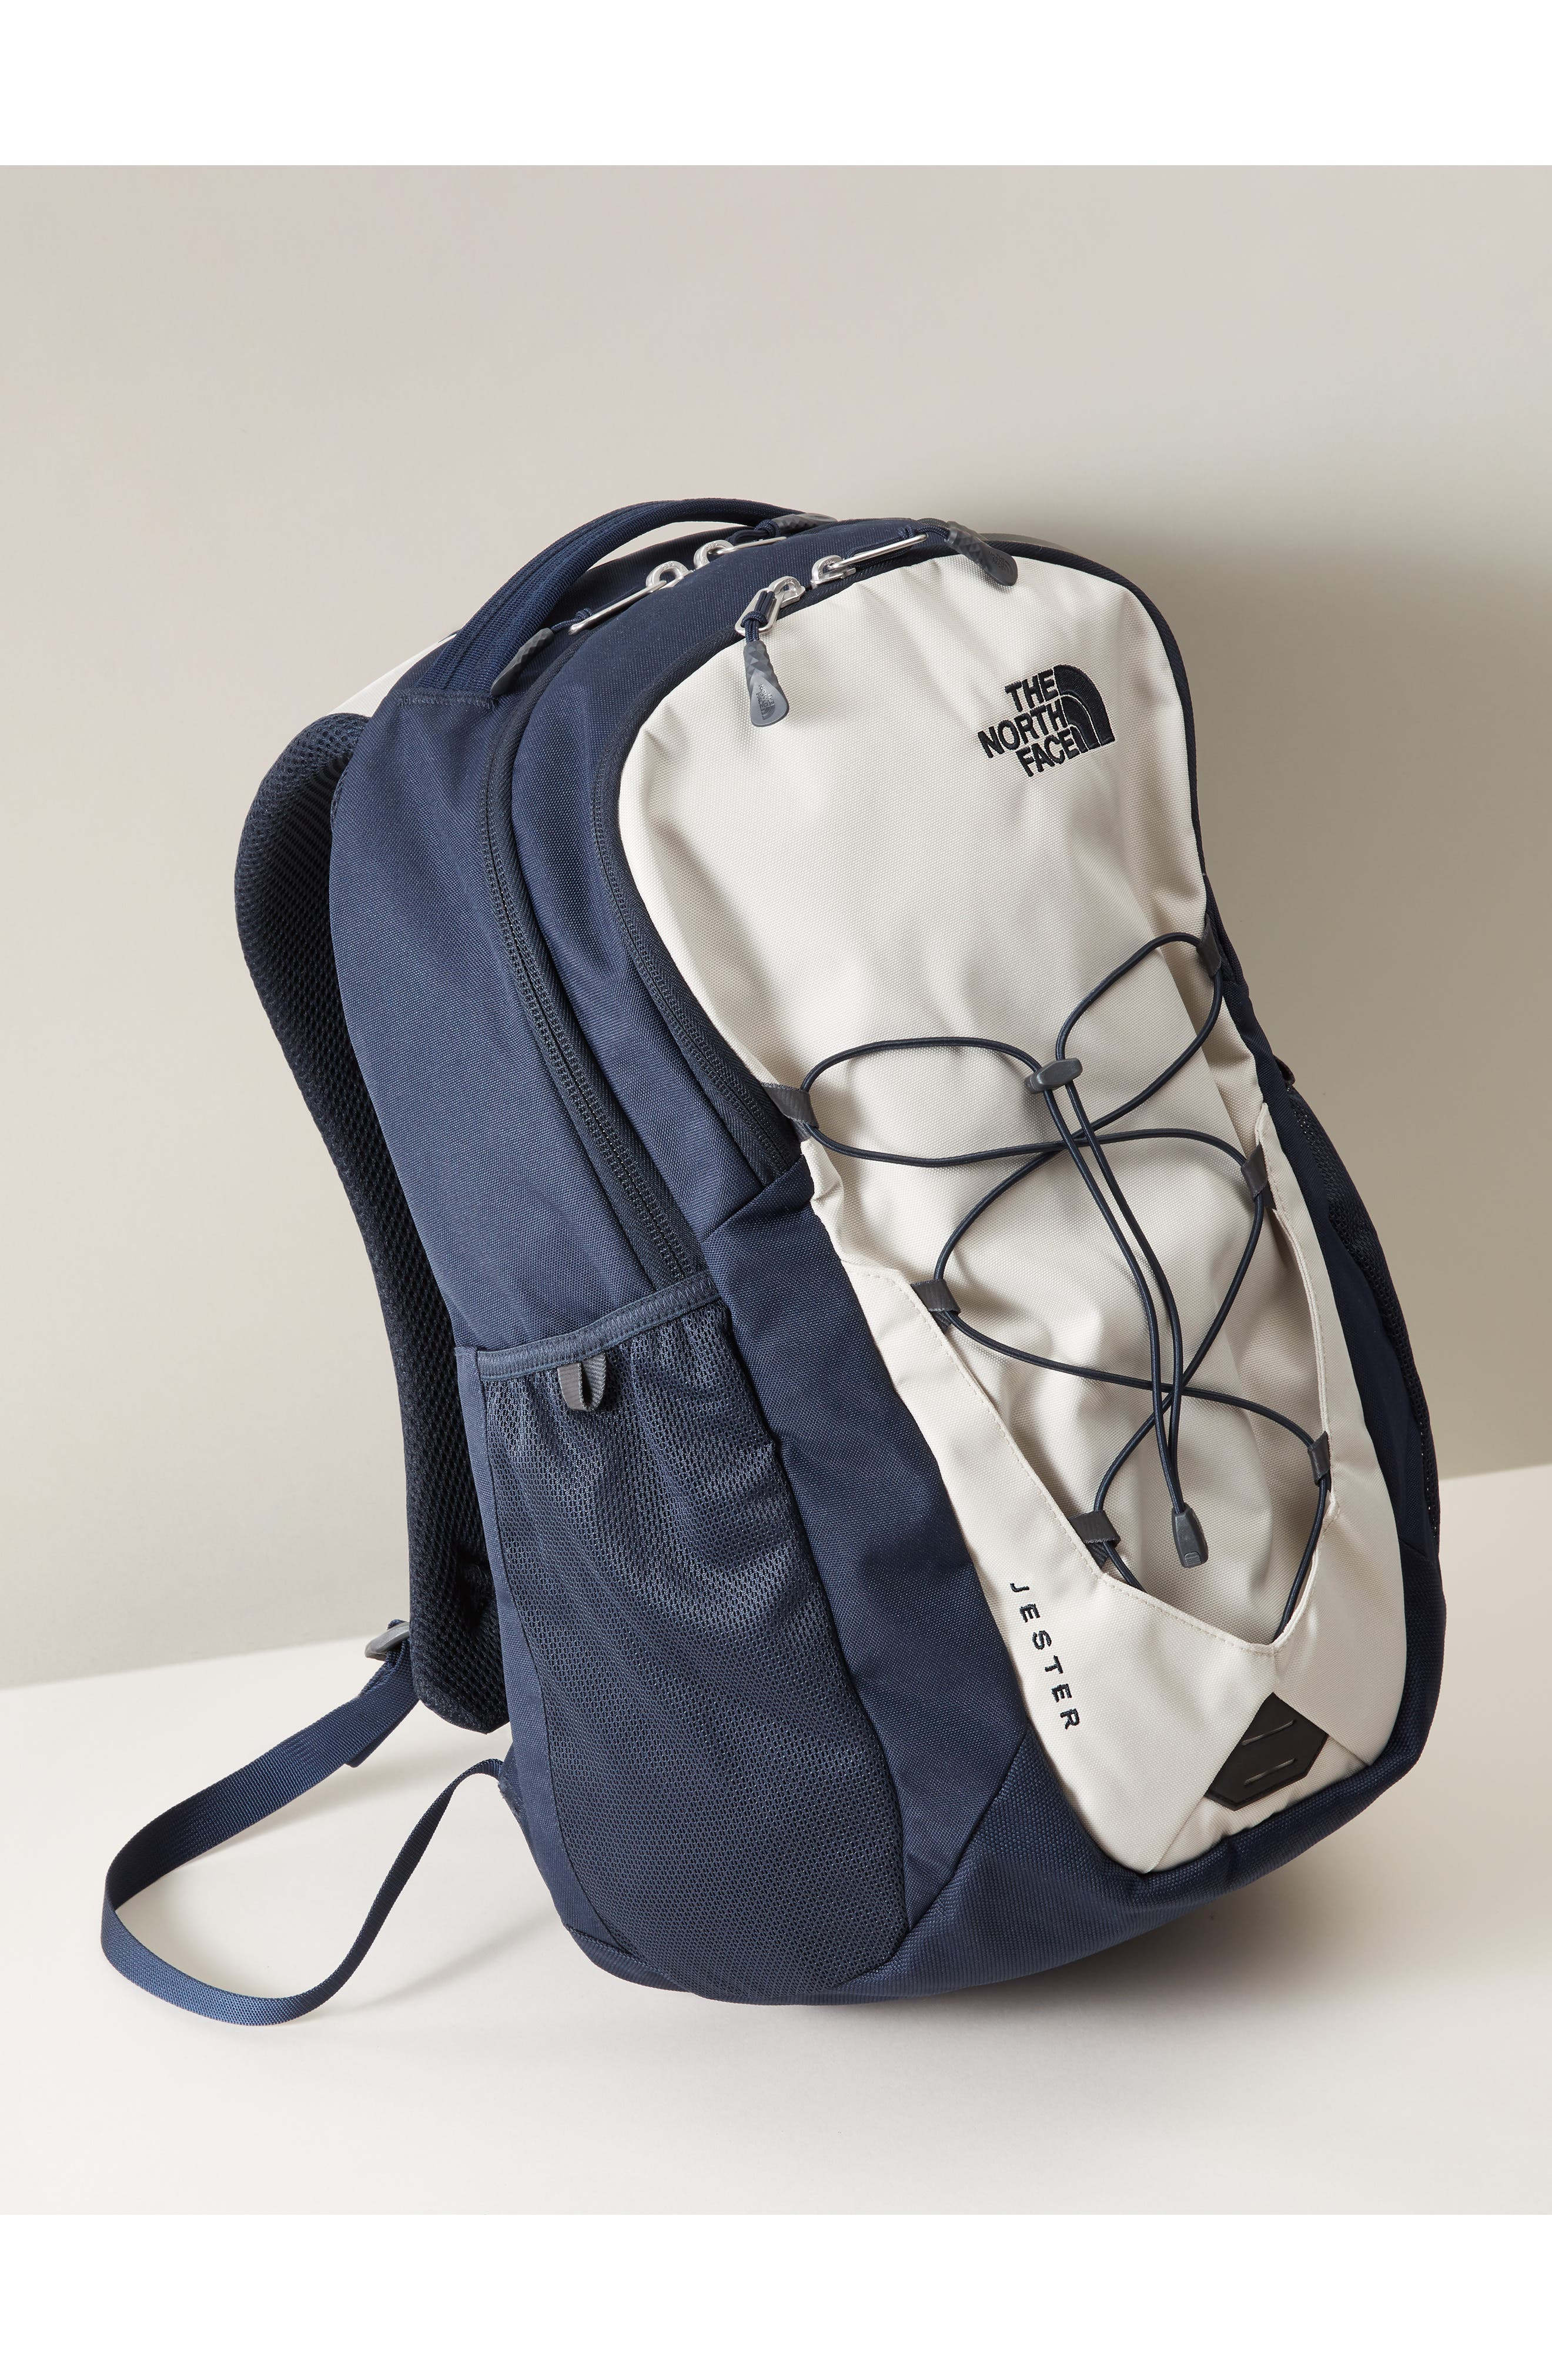 THE NORTH FACE,                             Jester Backpack,                             Alternate thumbnail 2, color,                             100